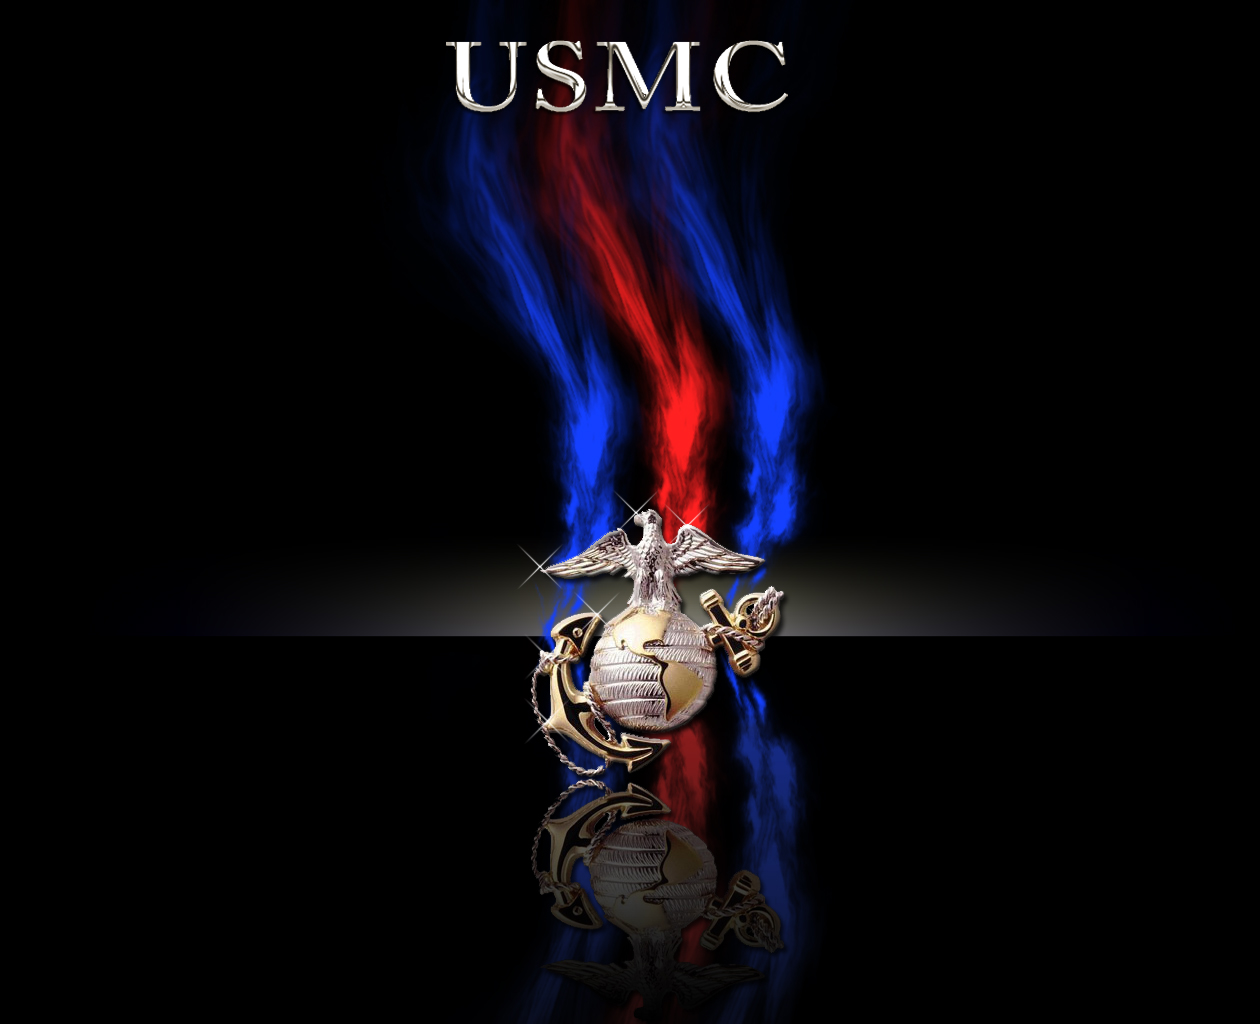 us marine corps the few us marine corps 1260x1024